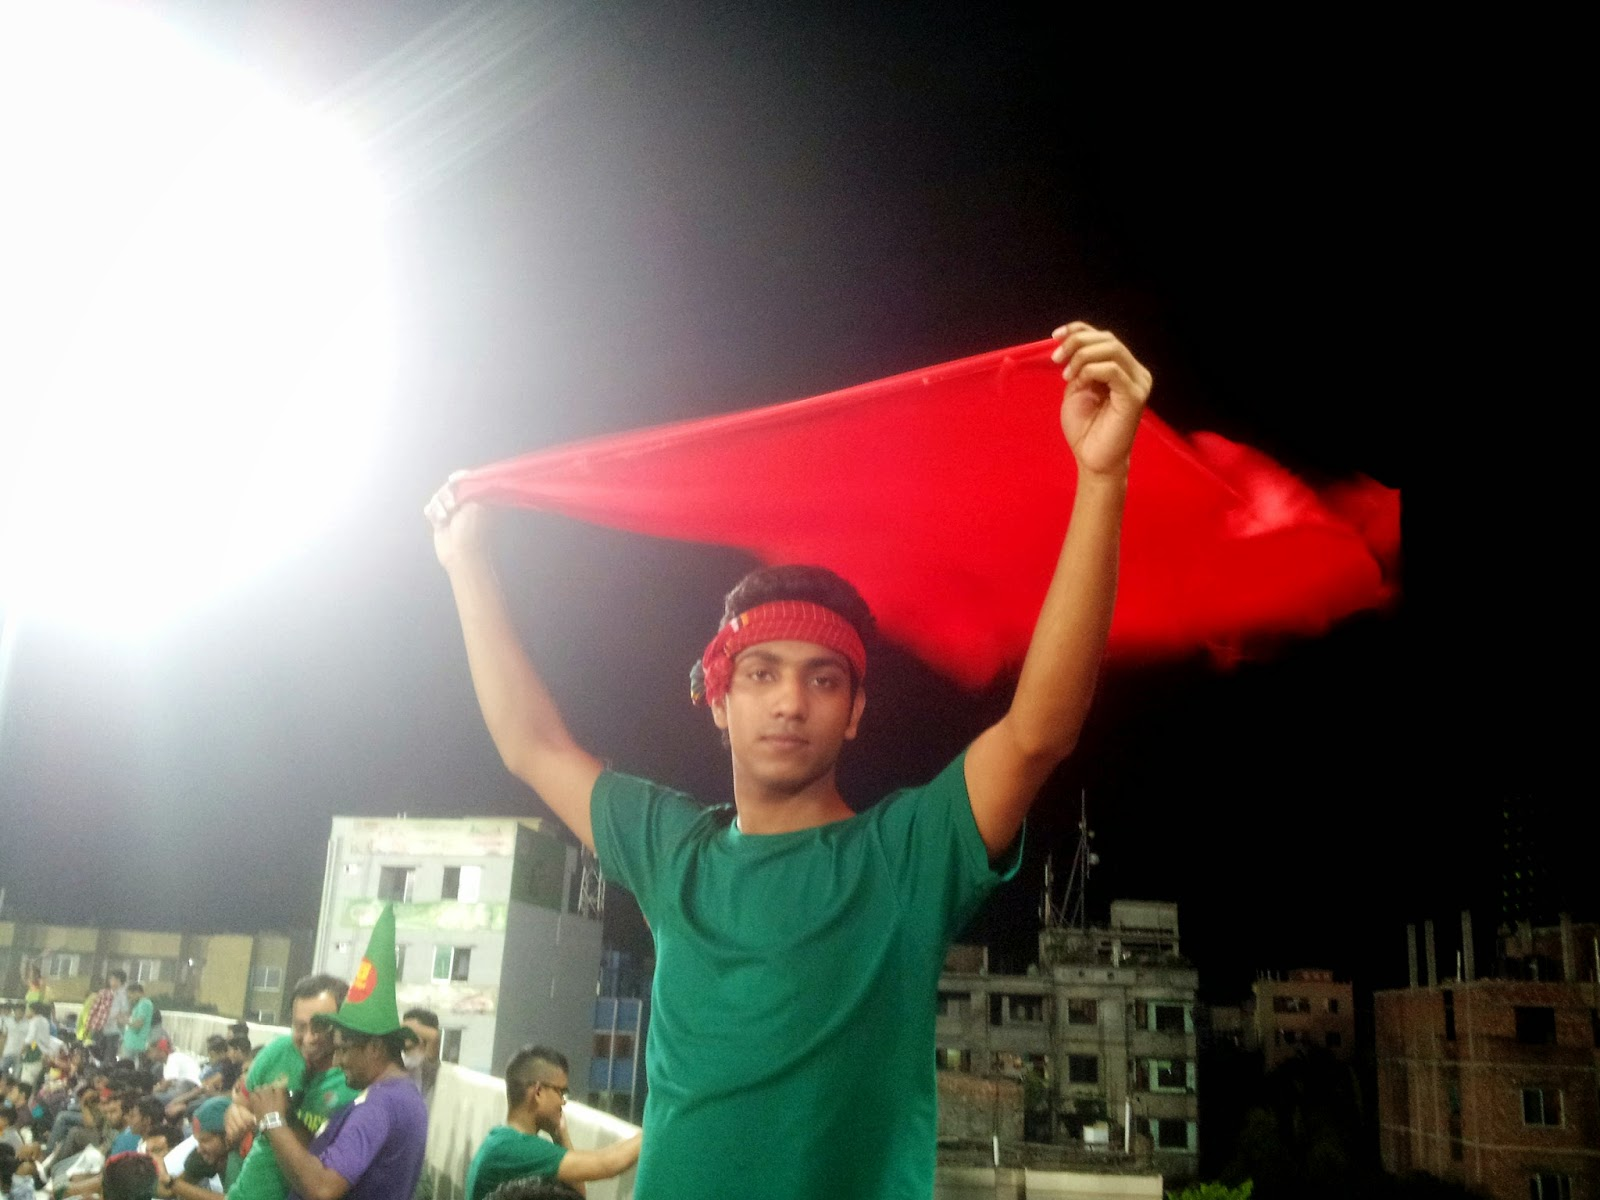 Labib with Red & Green at Stadium